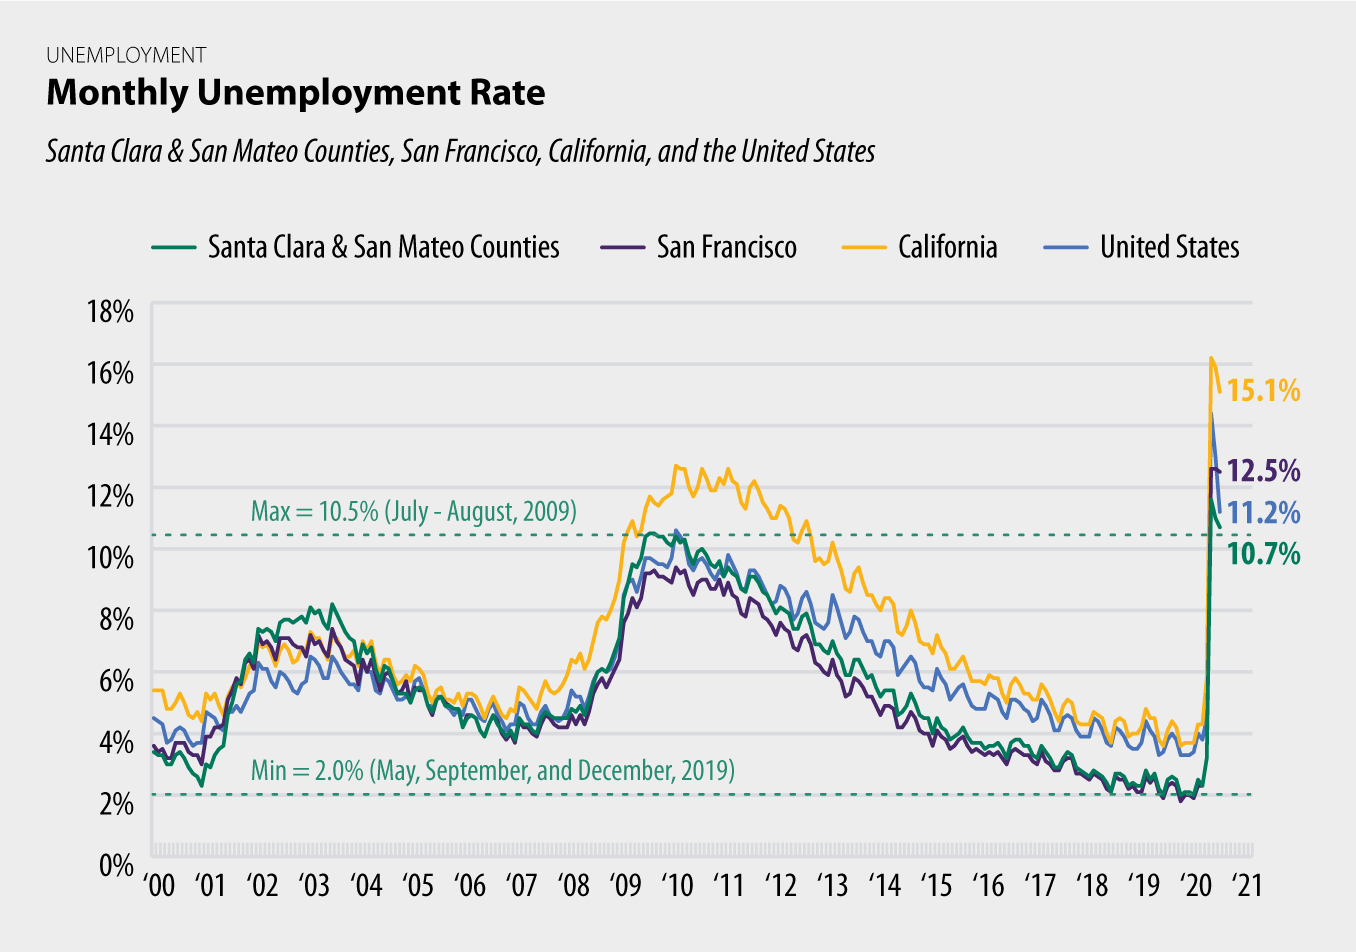 Monthly Unemployment Rate chart